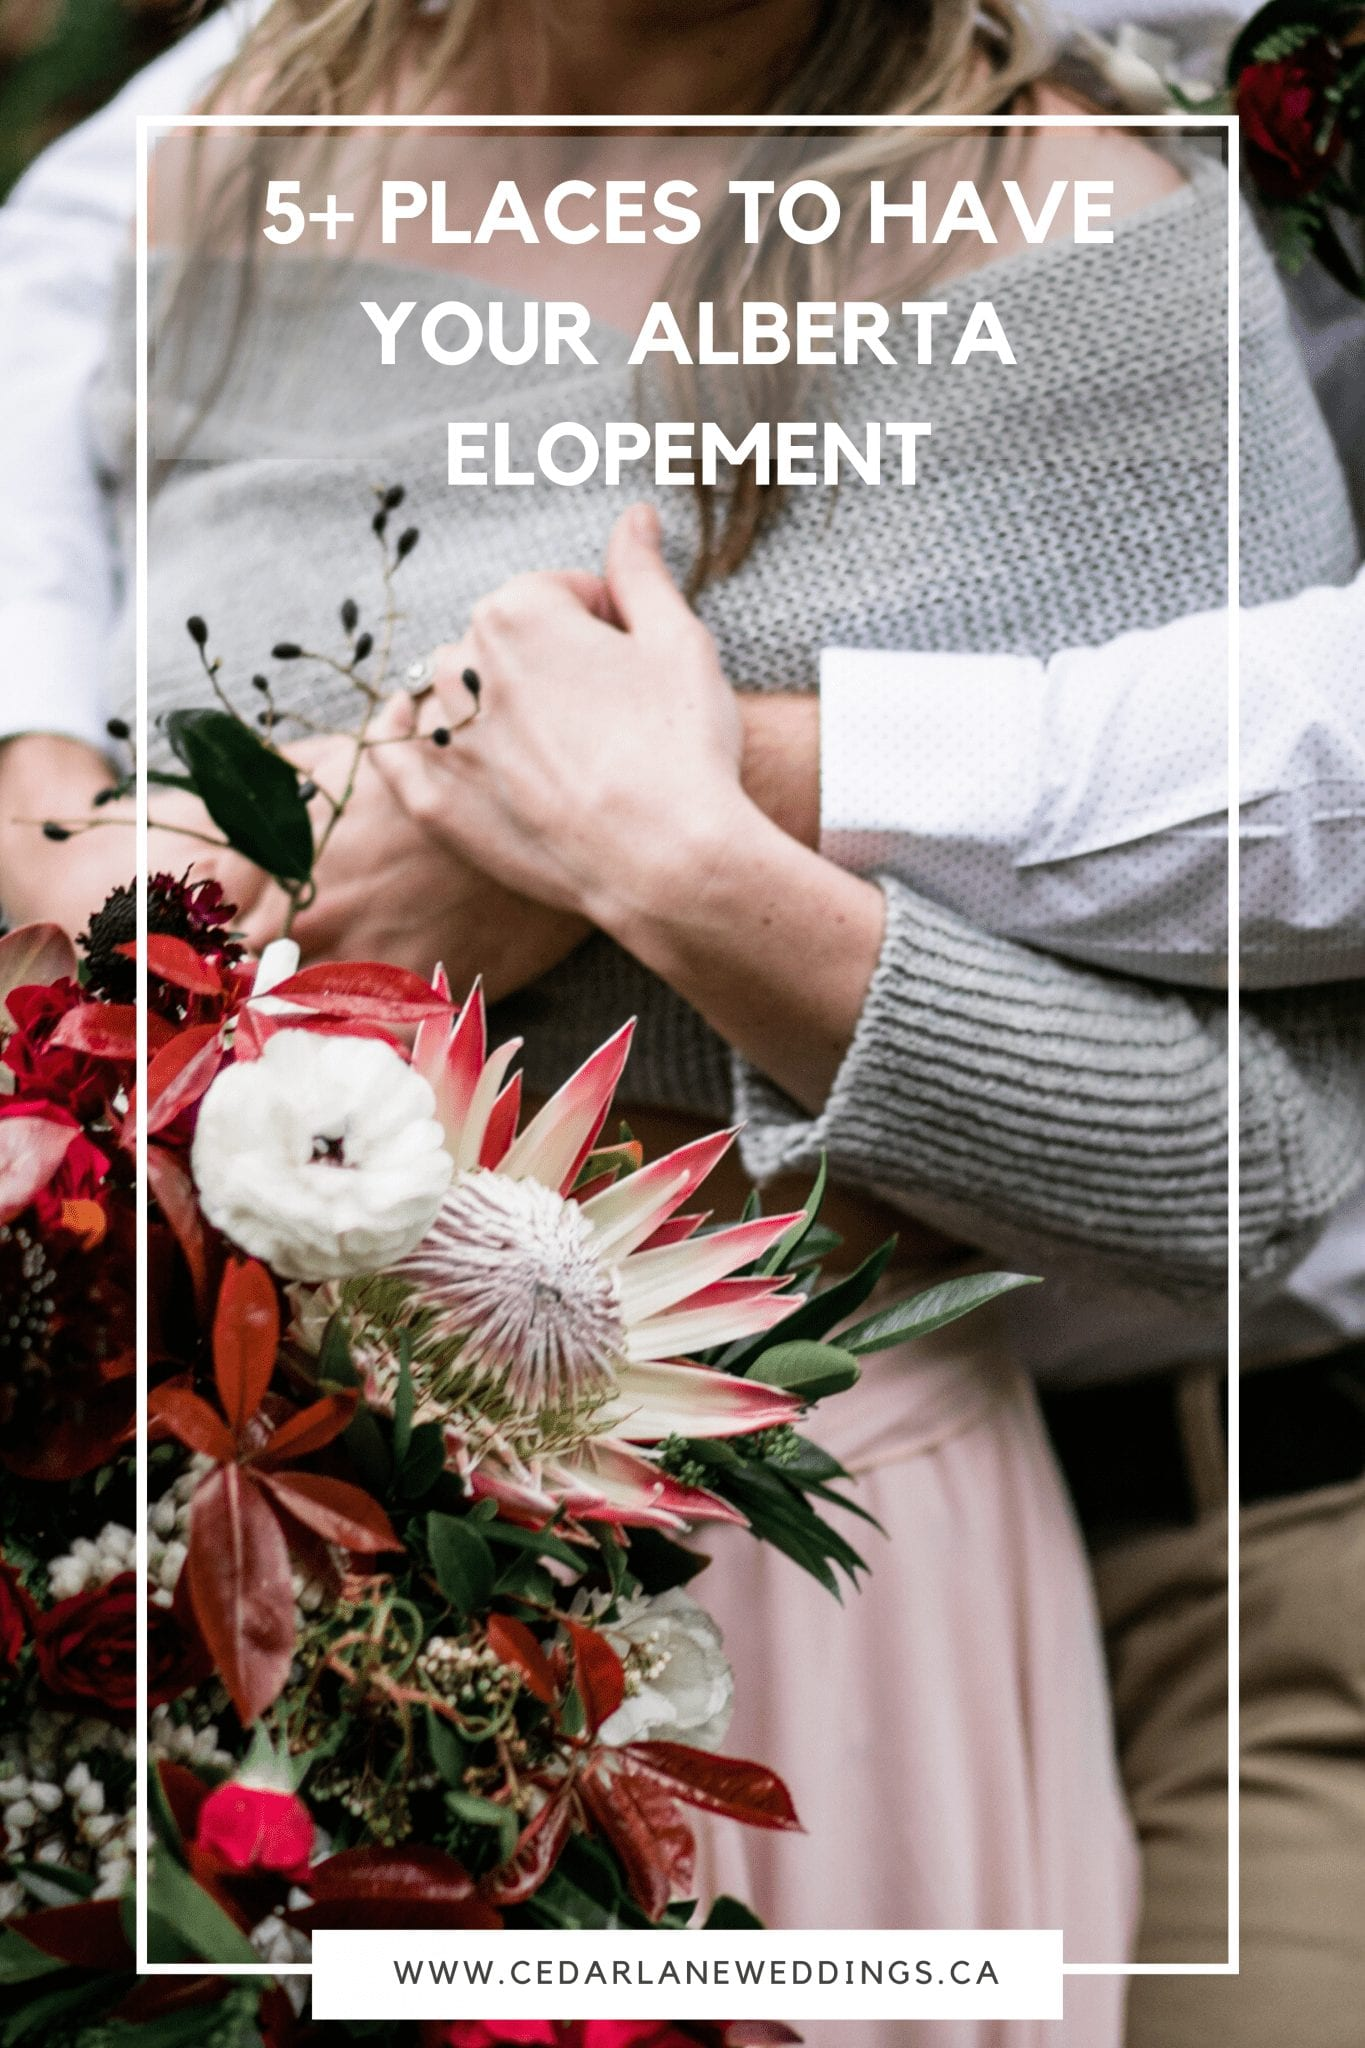 5+ Places to have your Alberta Elopement